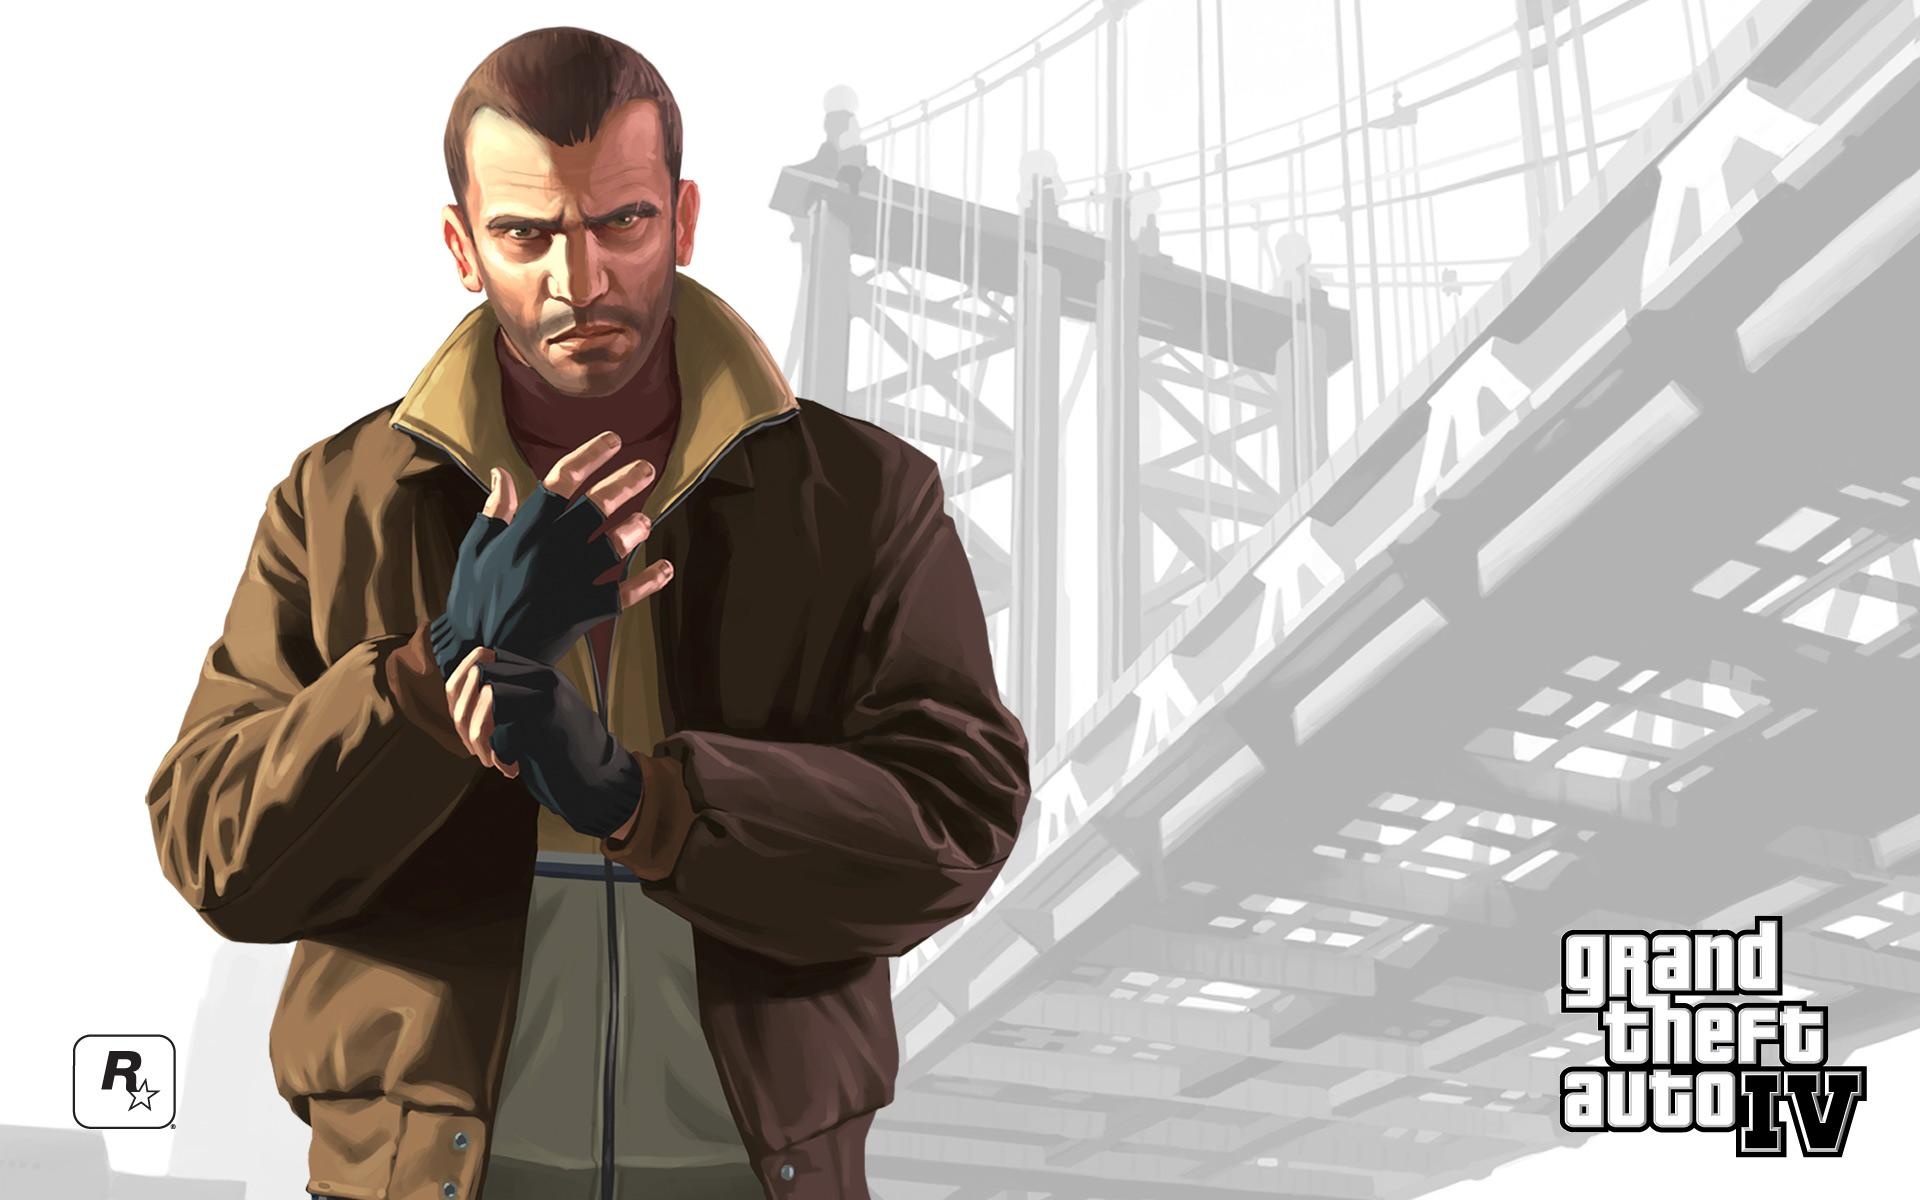 Niko Grand Theft Auto IV 160.01 Kb